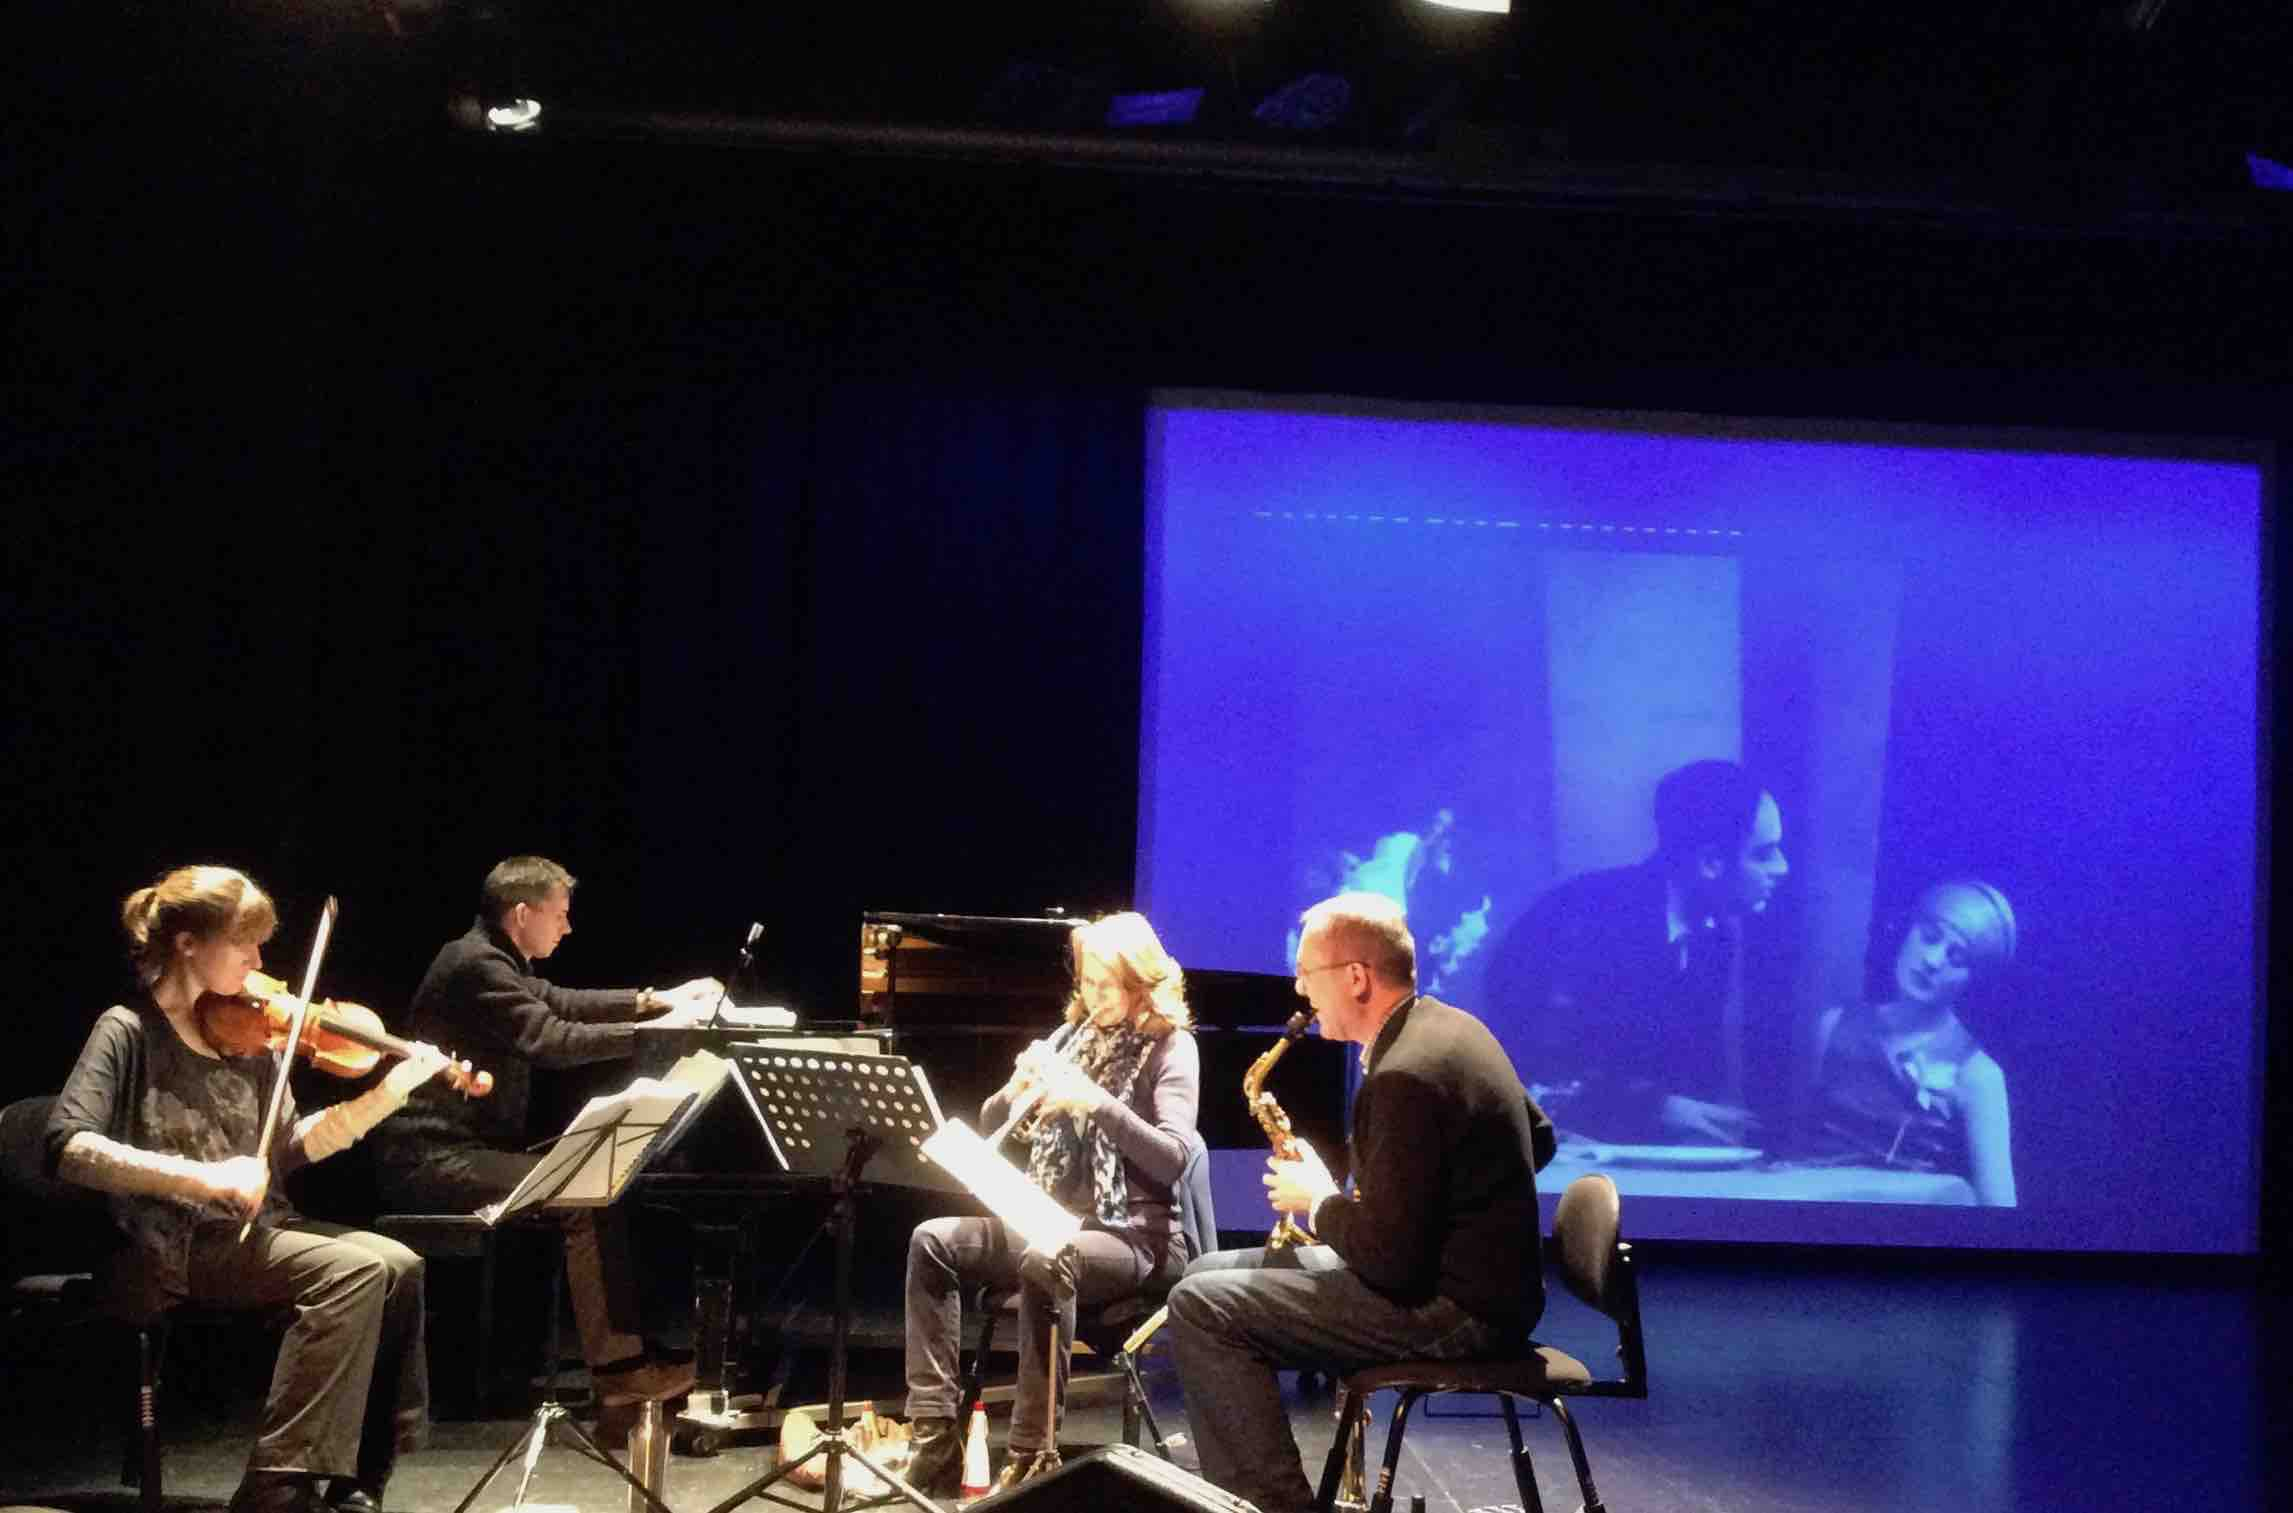 Counterpoise ensemble rehearing  The Fall of the House of Usher  in Luton, Feb 2017